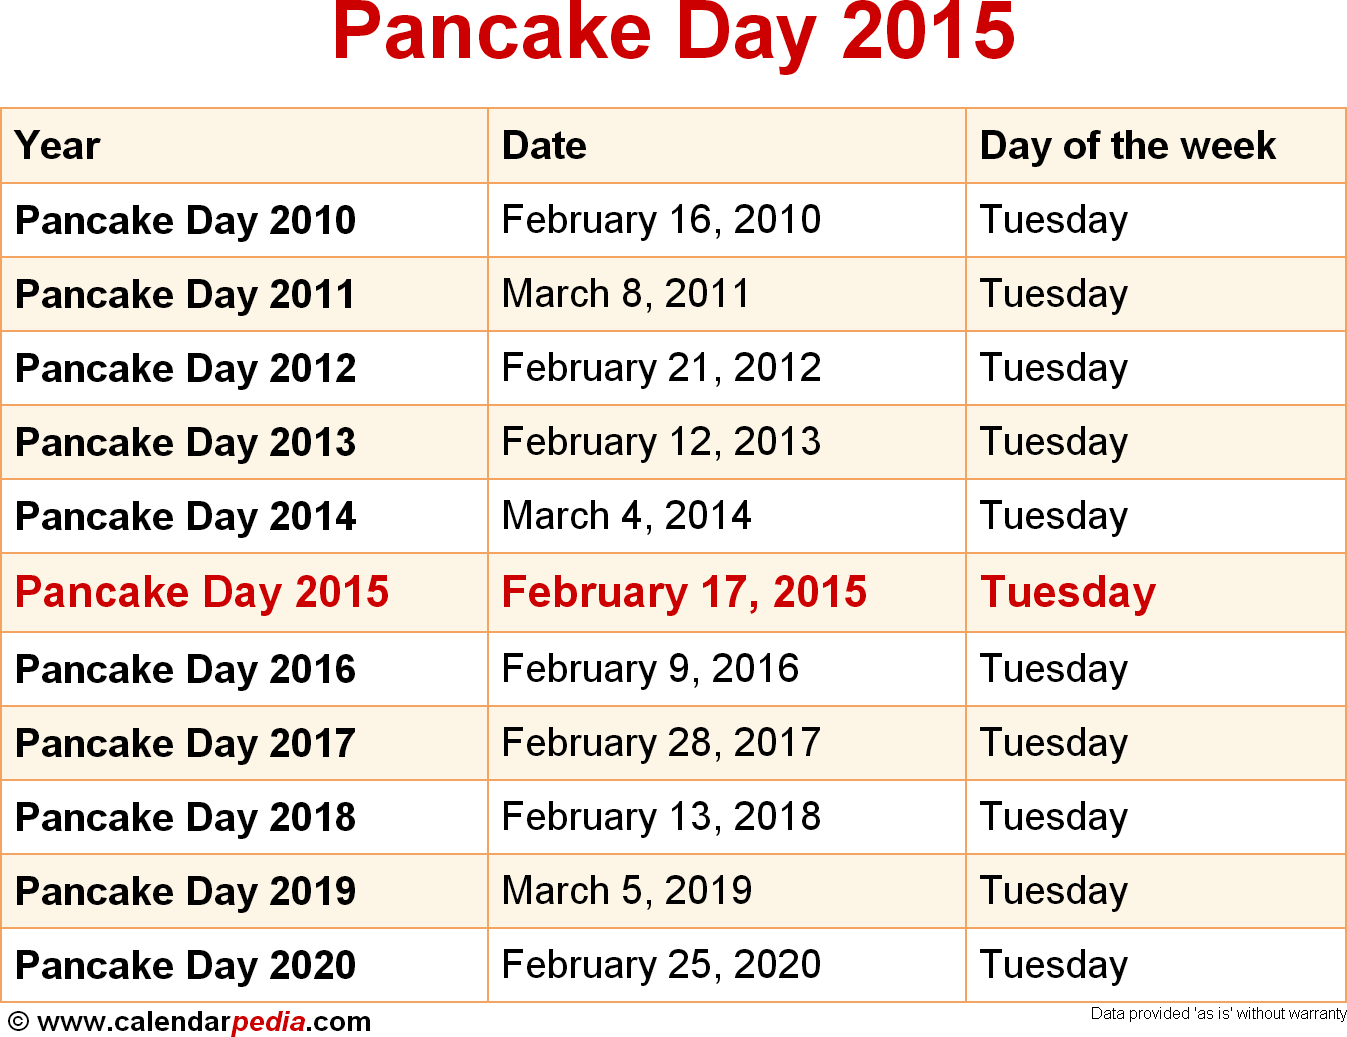 When is Pancake Day 2016 & 2017? Date of Pancake Day 2016